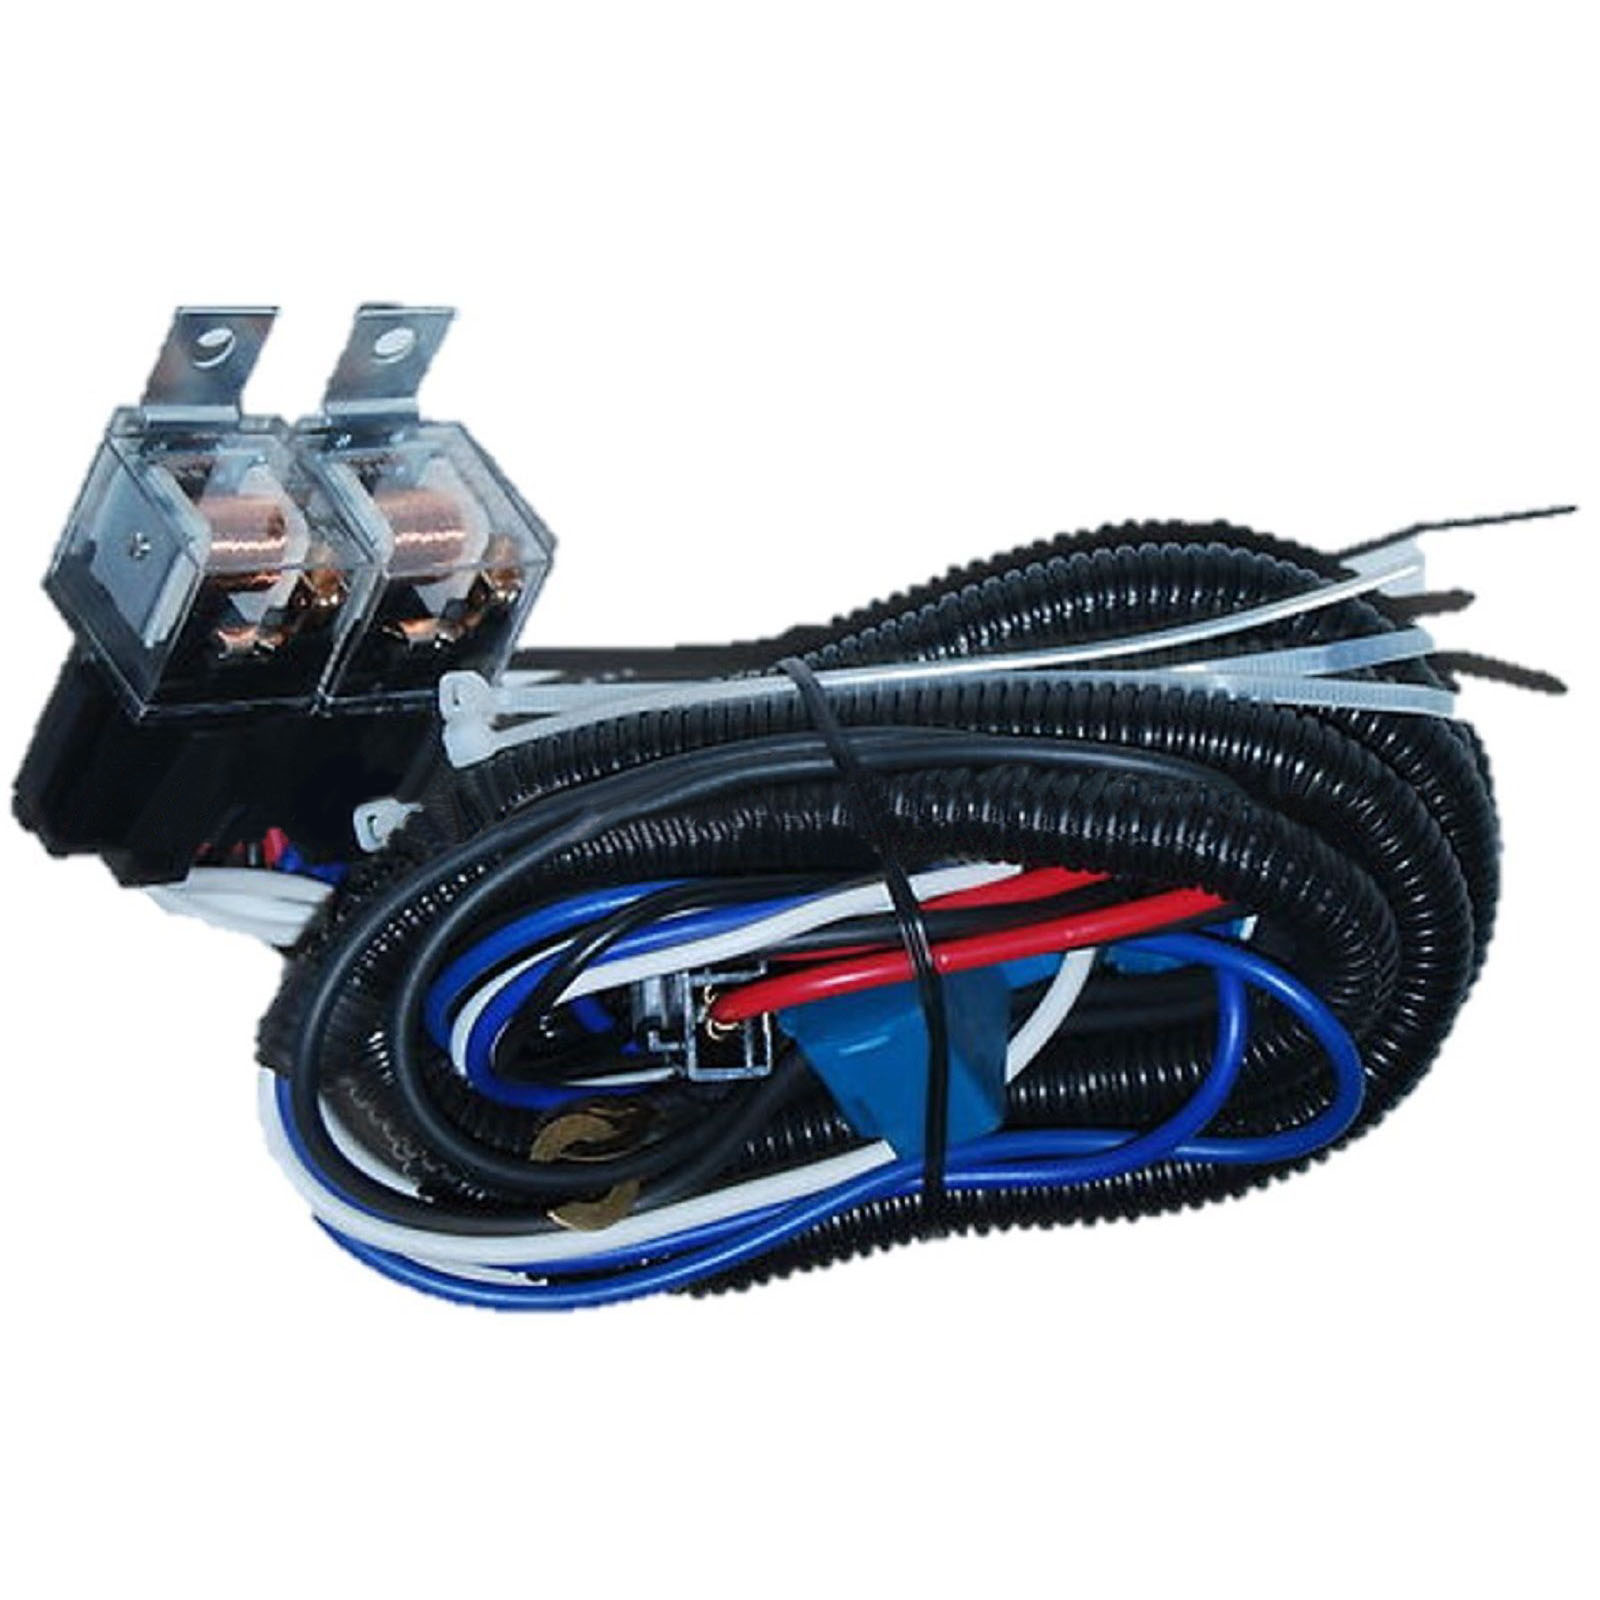 Ceramic H4 Relay Wiring Harness 4 Headlight Headlamp Light Bulb Volvo Wire Click Thumbnails To Enlarge